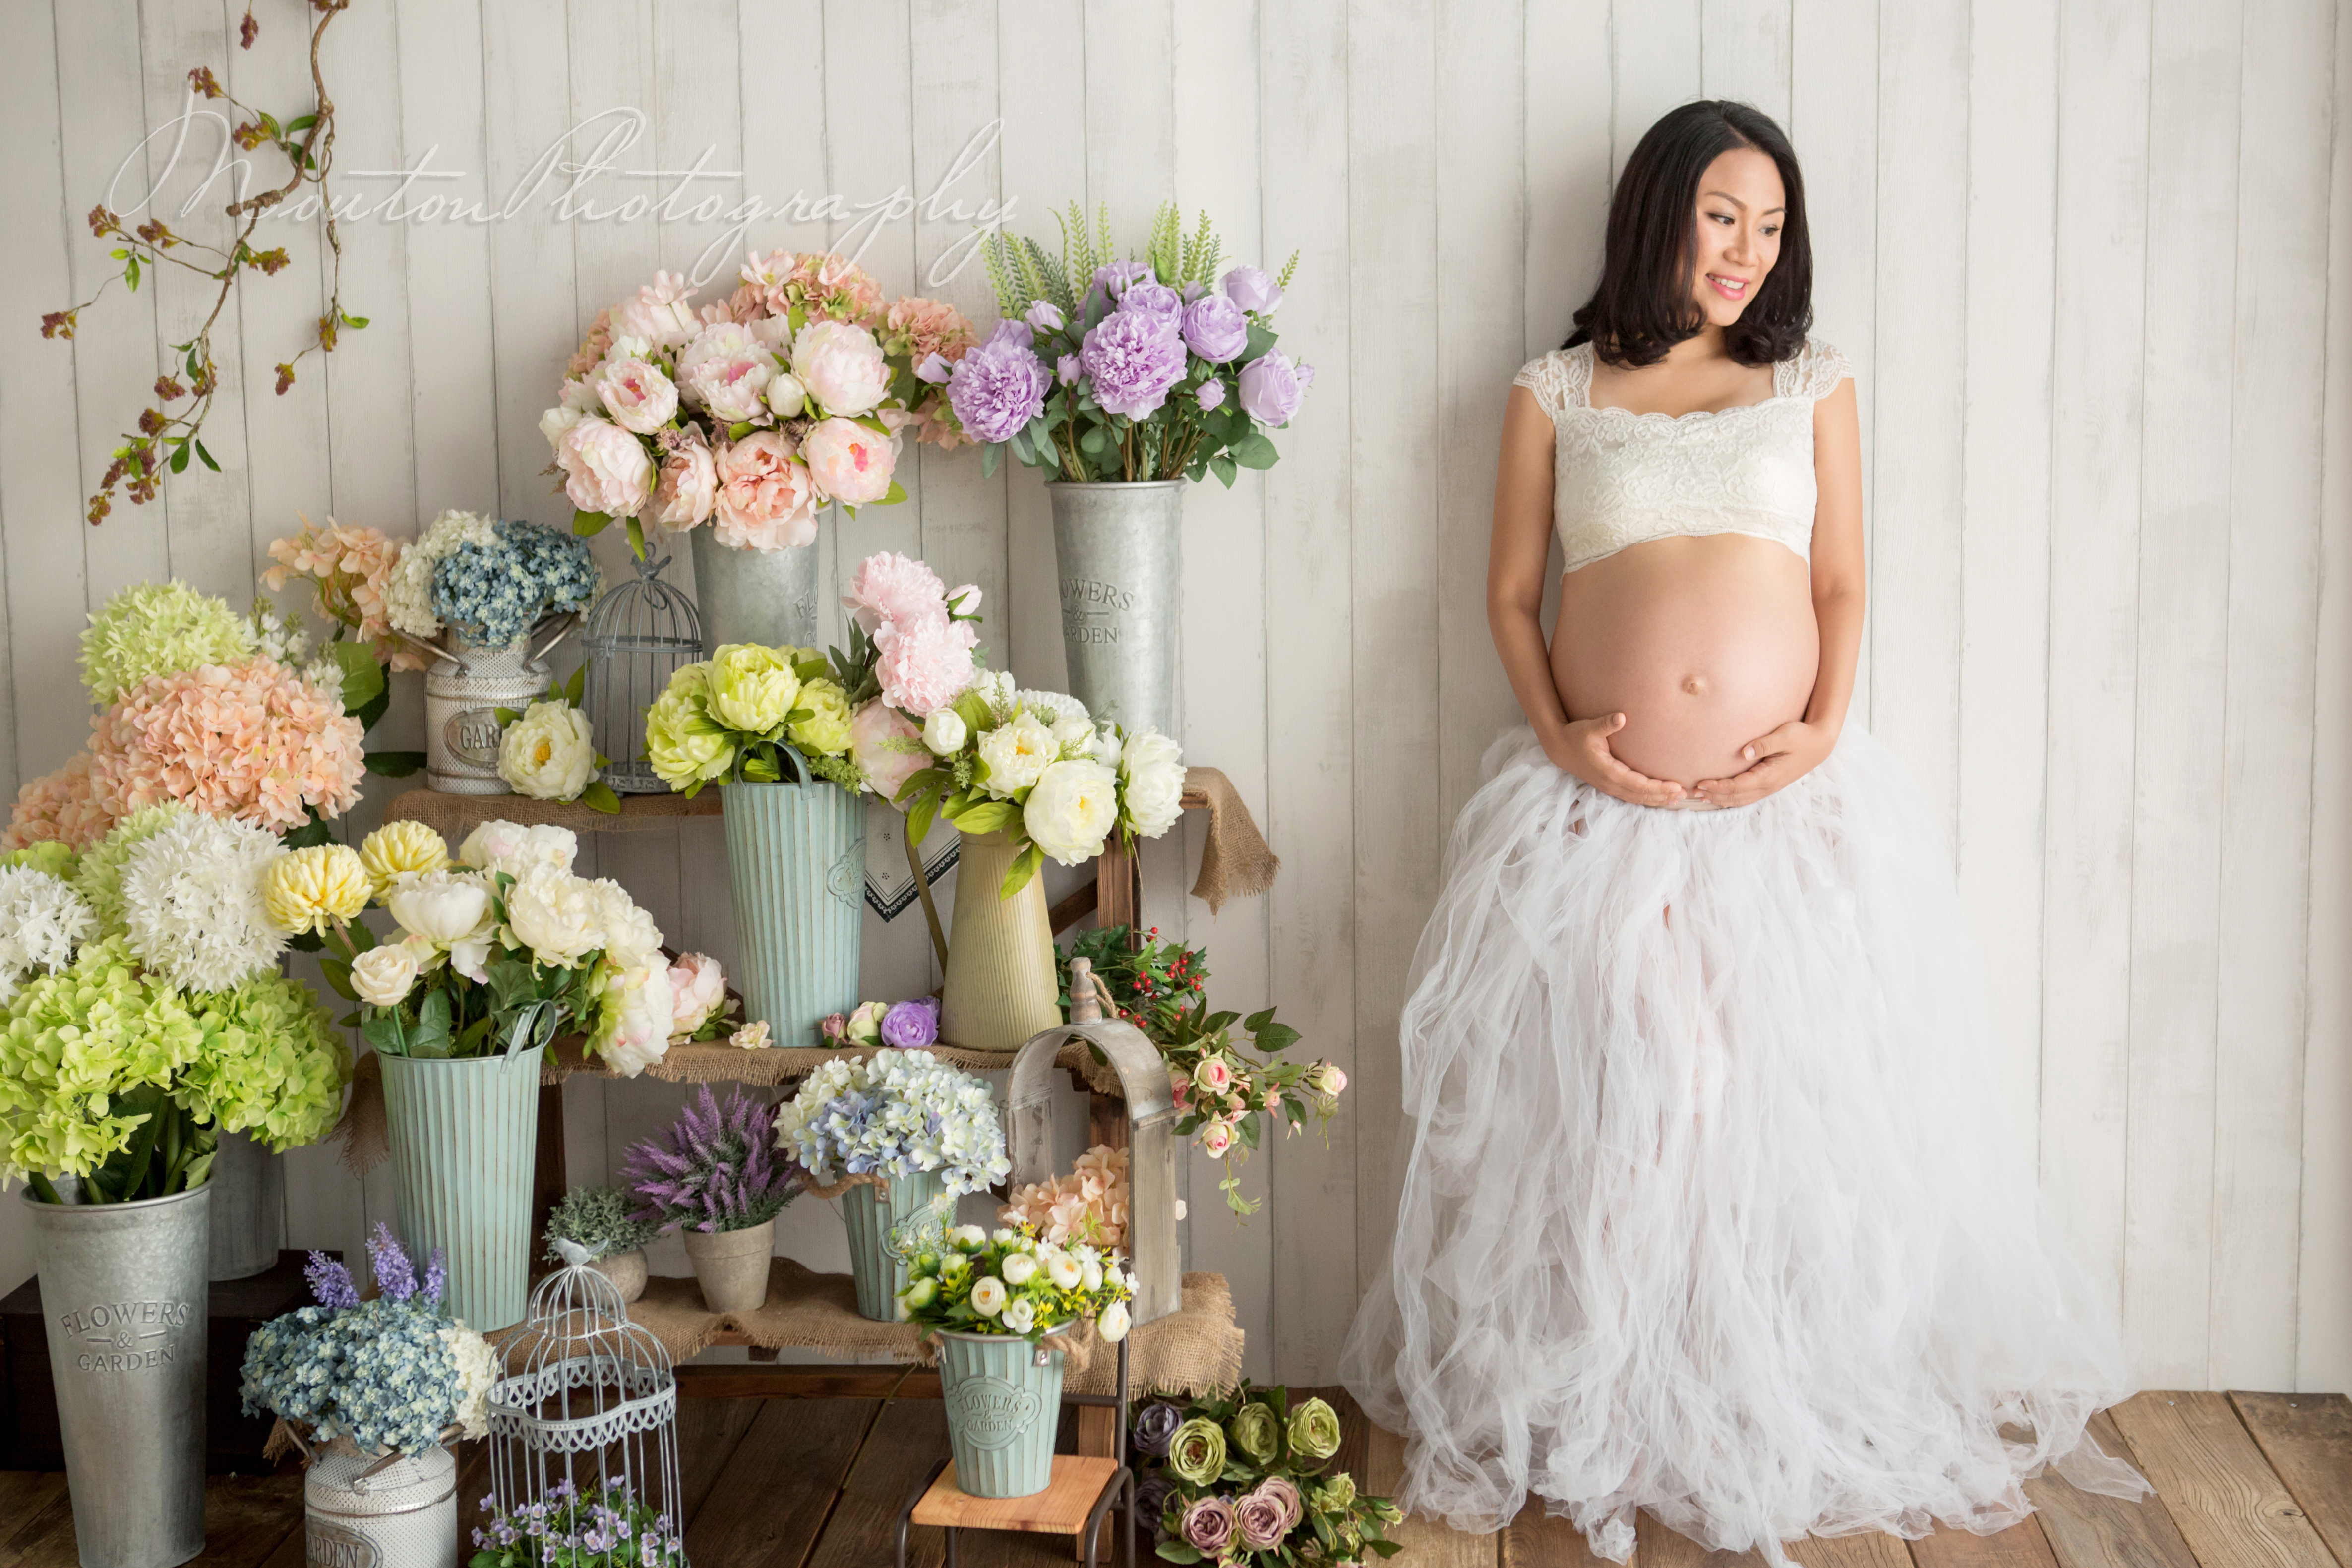 Mum-to-be Pregnancy Session